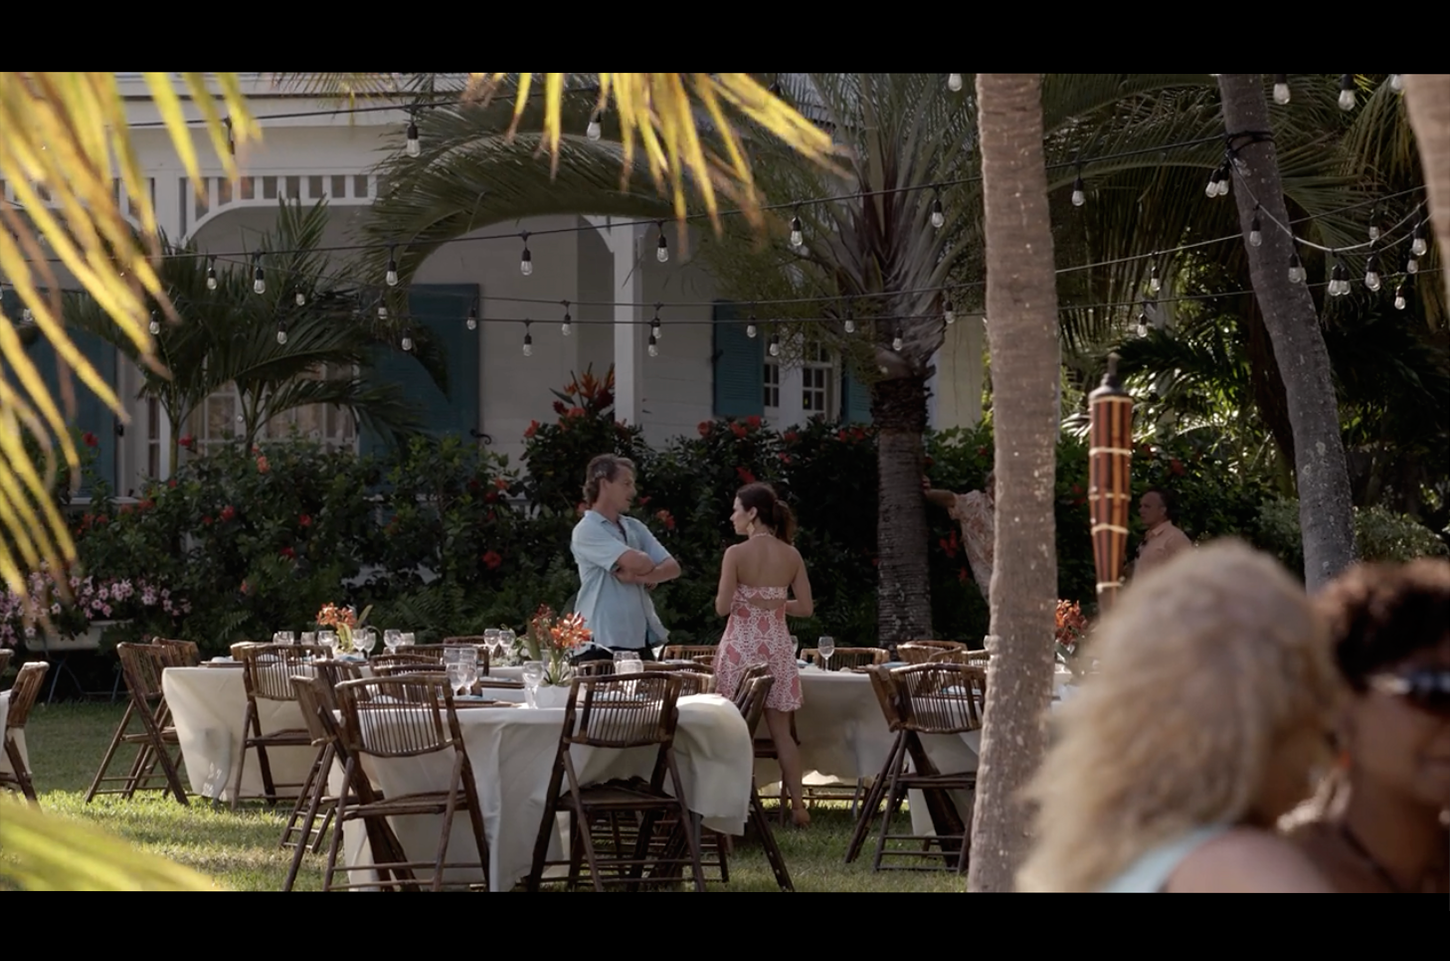 Screenshot from Bloodline of a scene filmed on the lawn in front of The Rayburn House (in real life The Moorings Village & Spa).